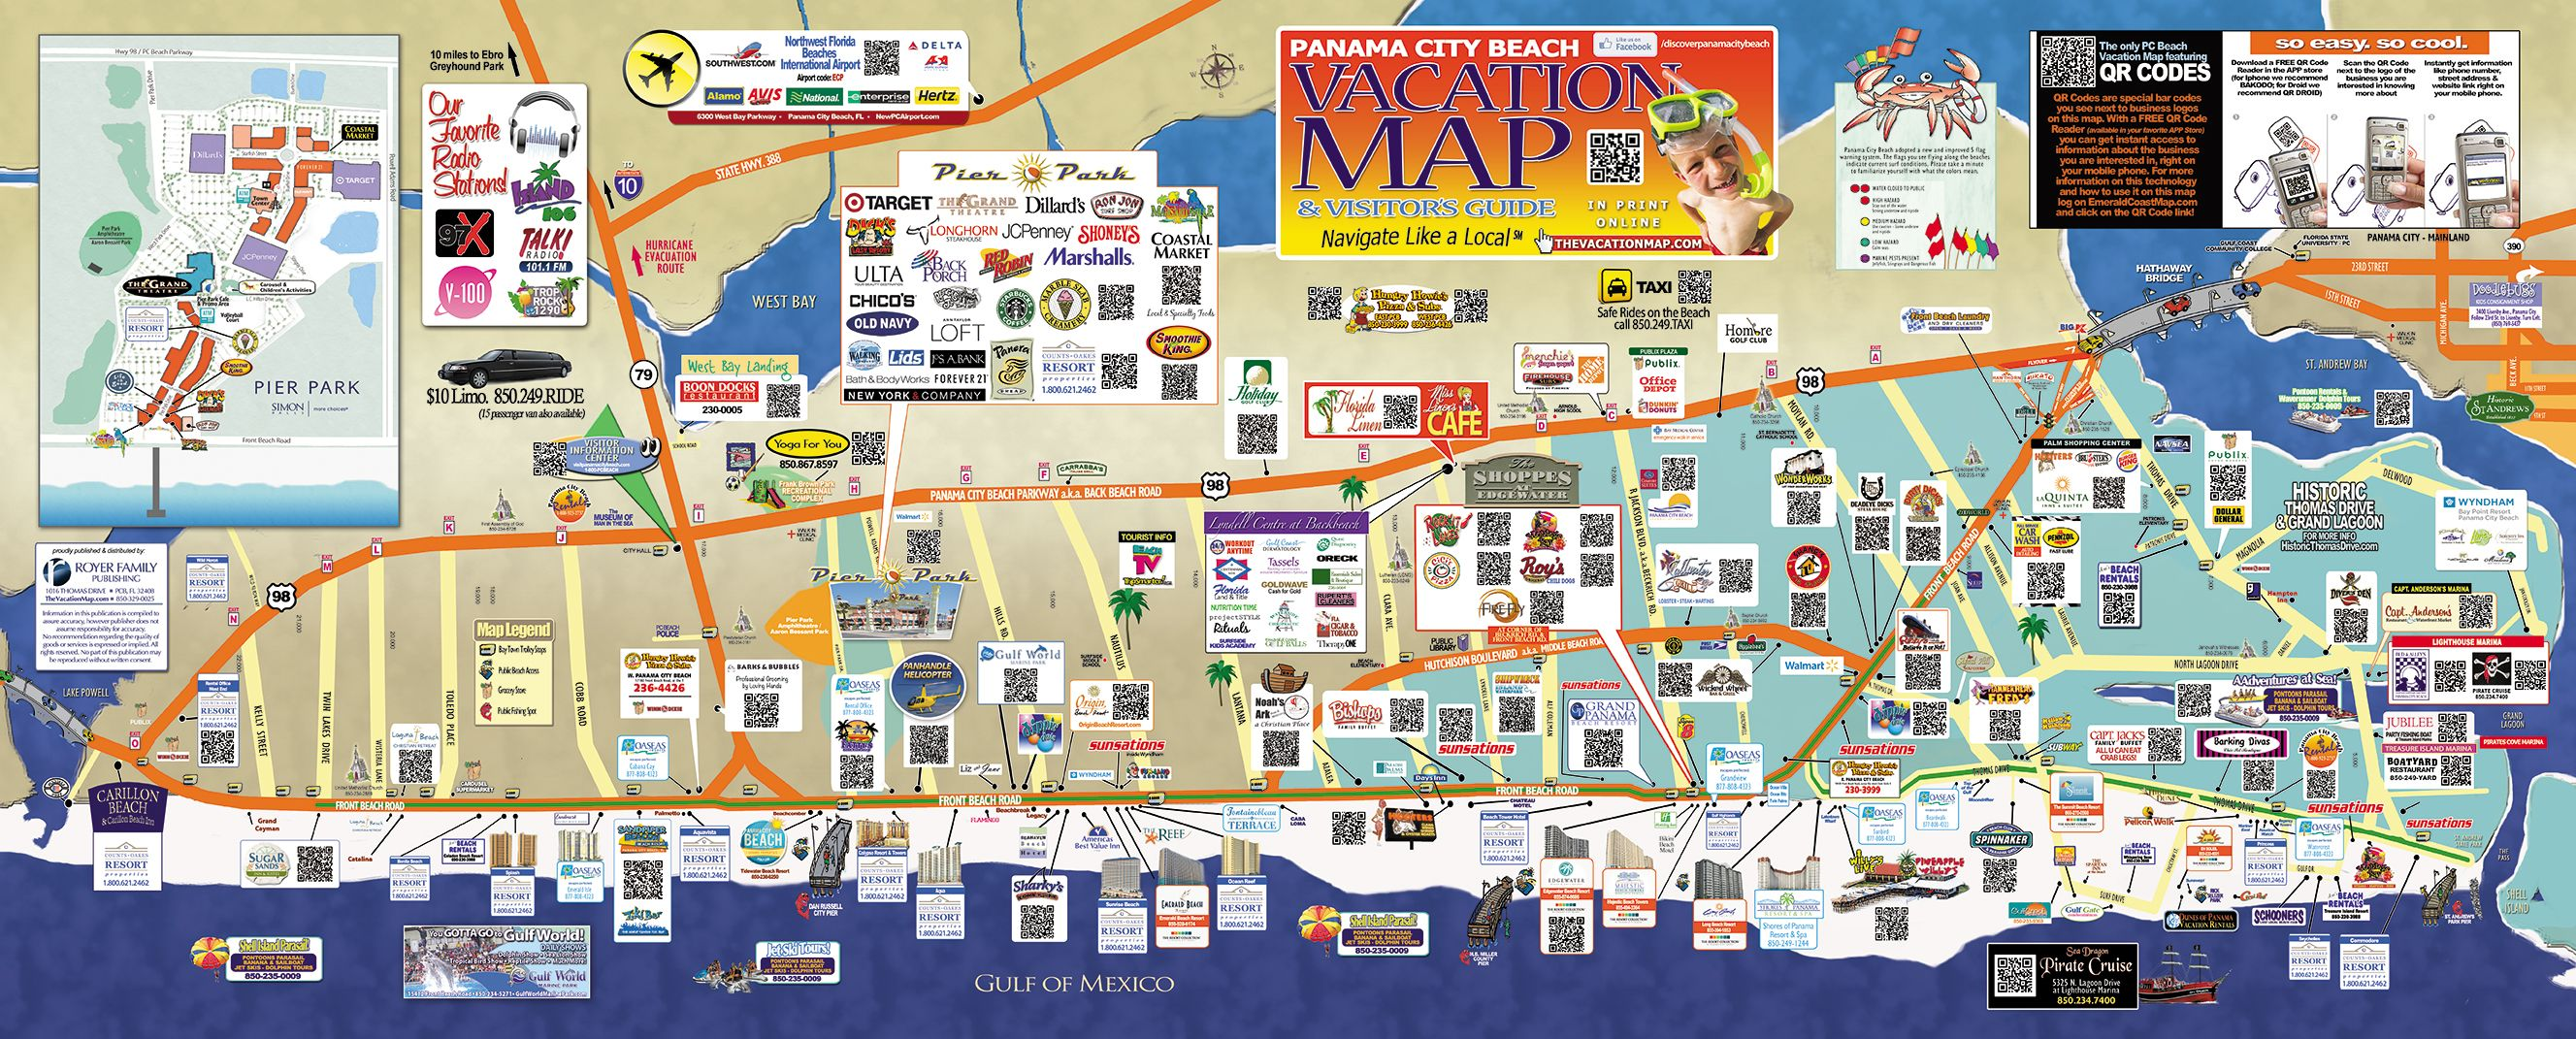 Find Some Of The Top Bars Hotels Restaurants And Attractions Pcb Map Panama City Beach Florida